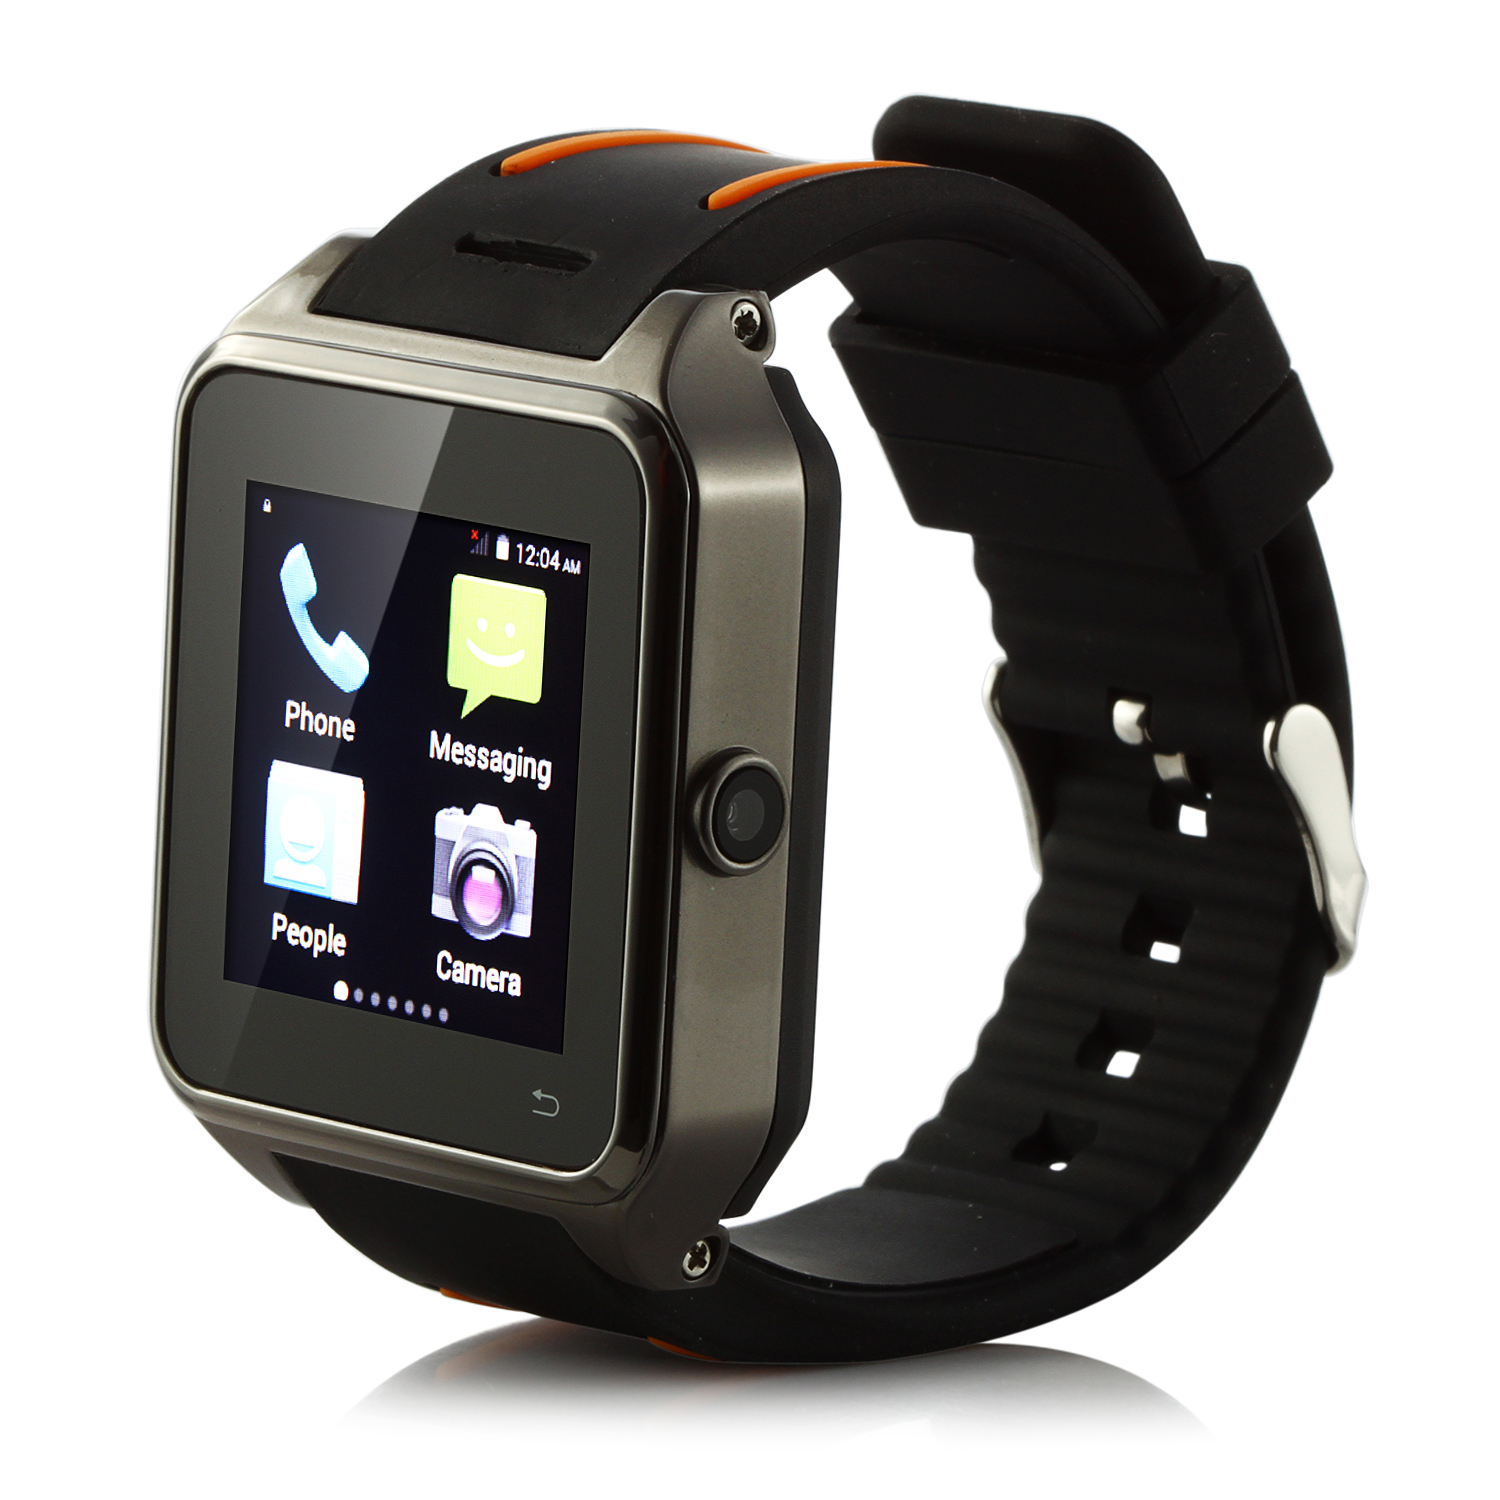 ZGPAX S82 Smart Watch Phone 1.54 Inch MTK6572W Dual Core Android 4.4 3G GPS Play Store